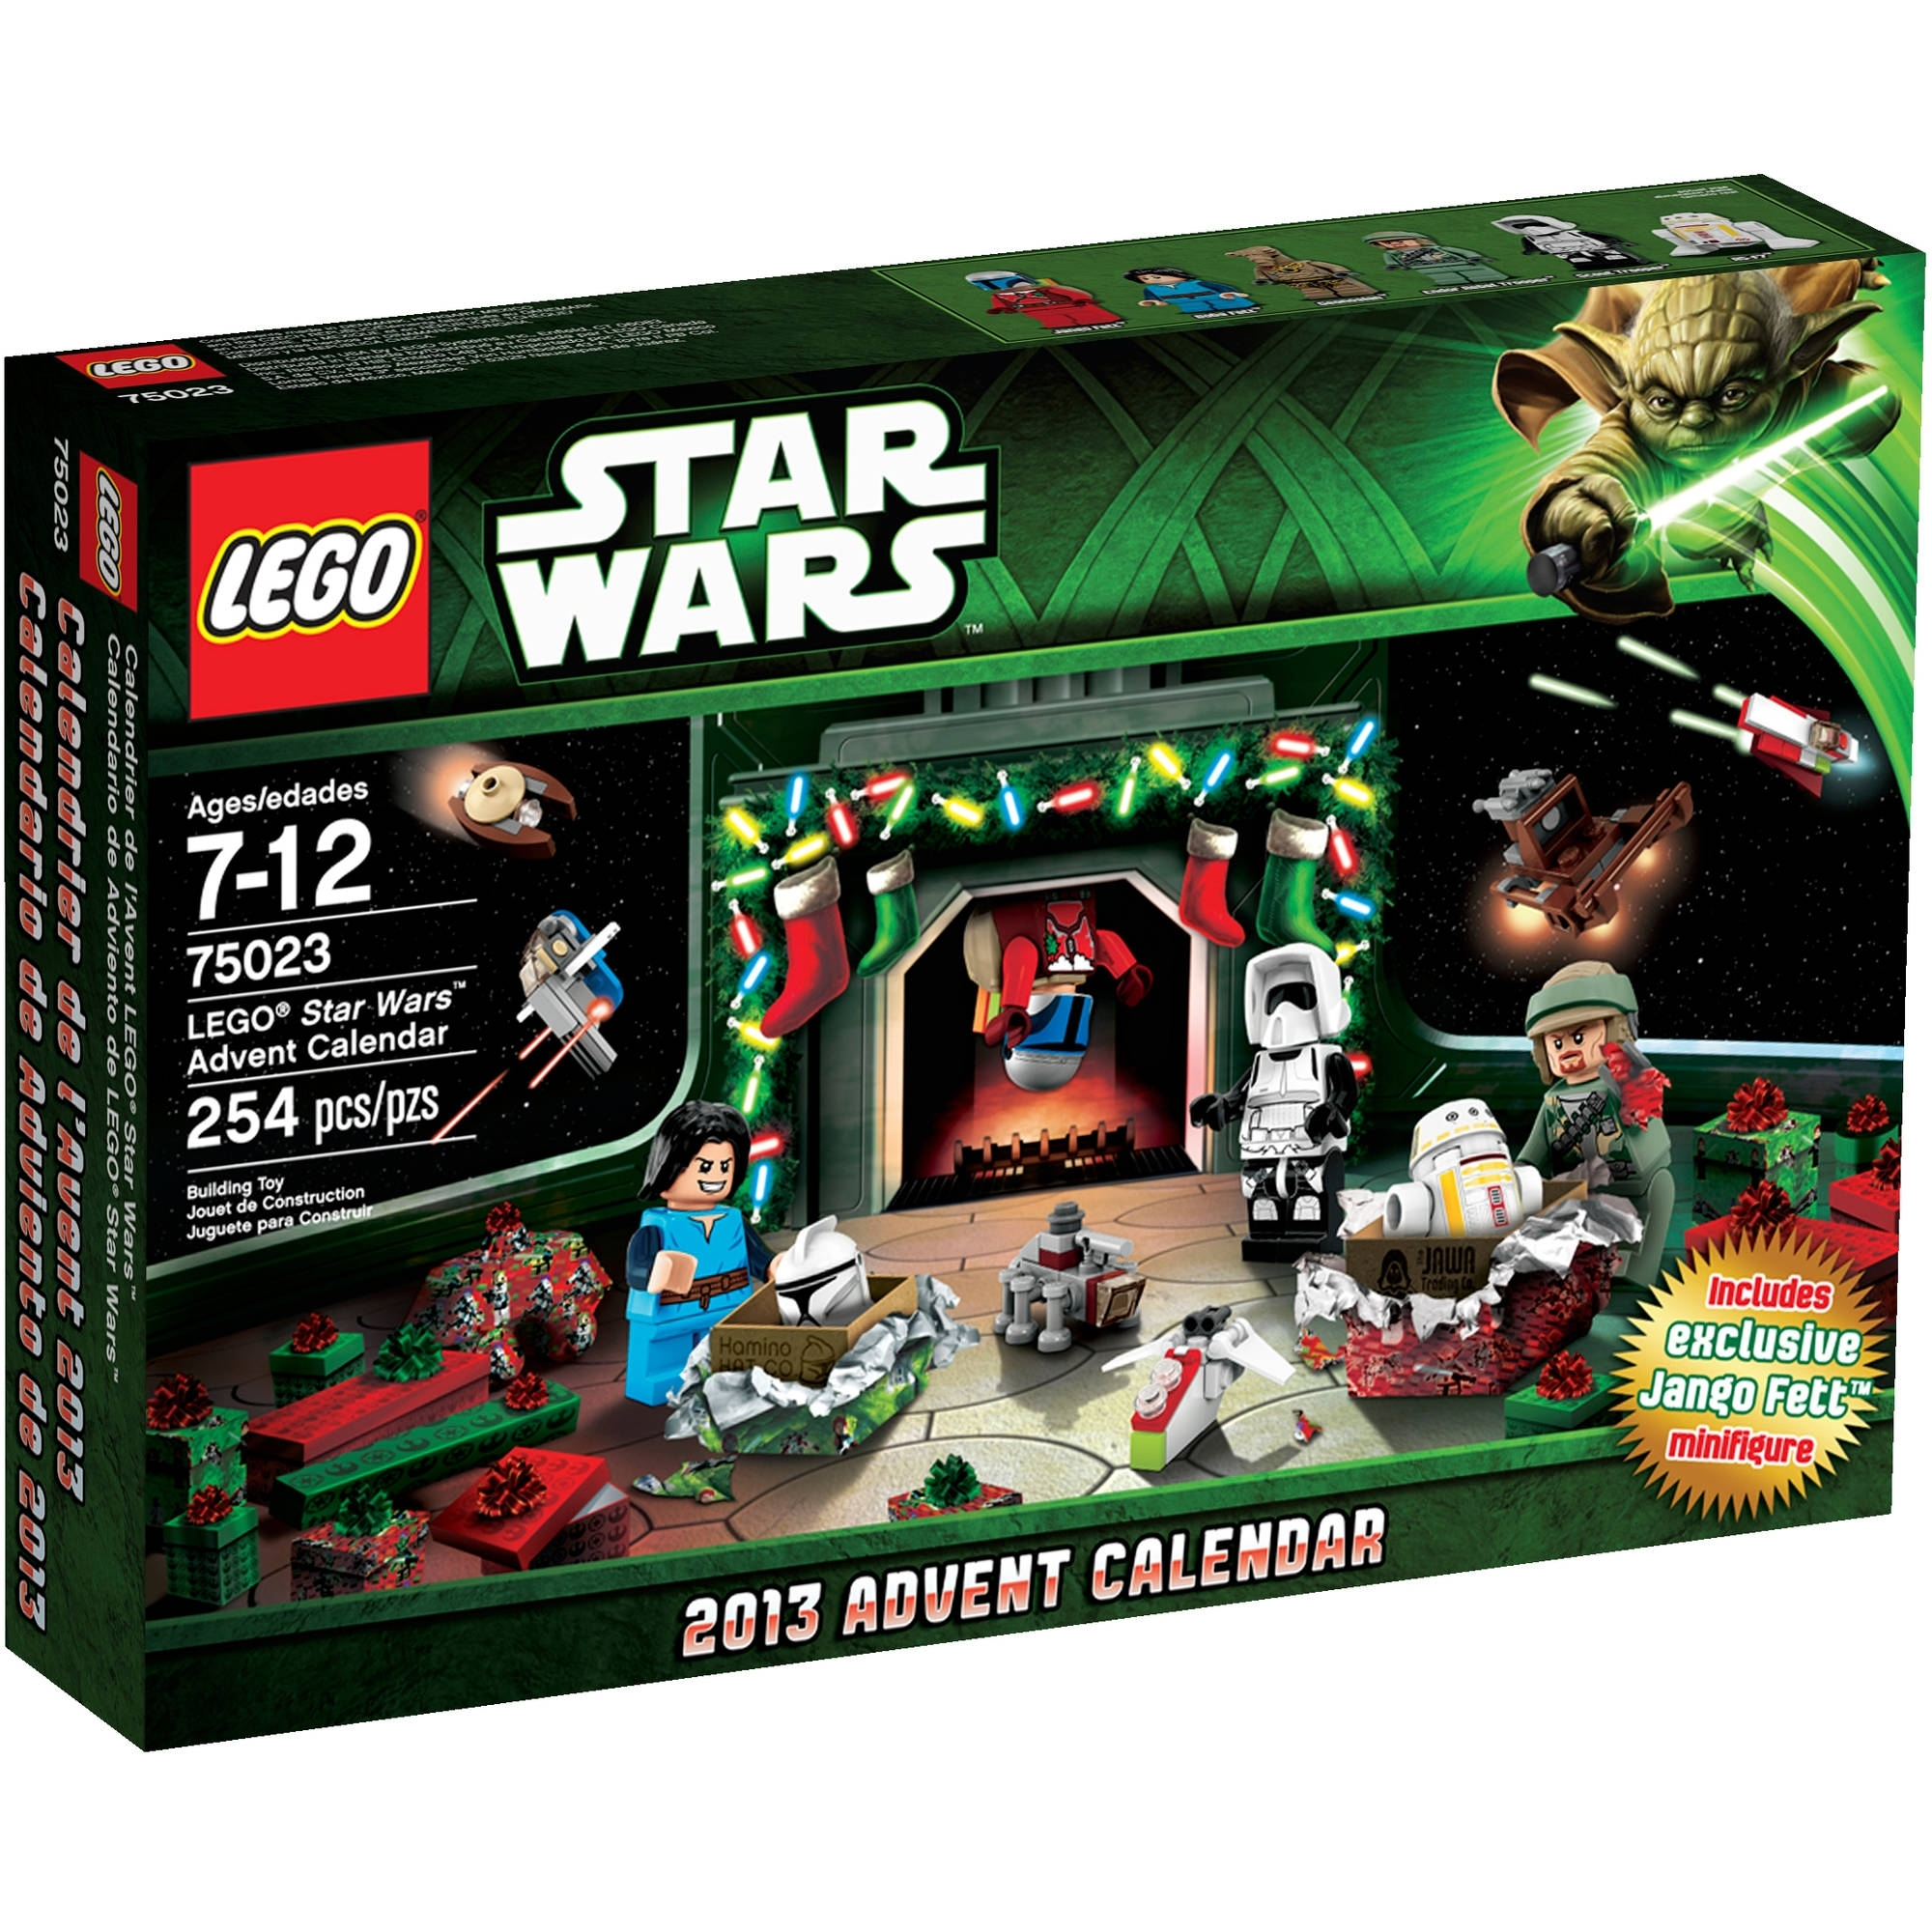 Lego Star Wars 2013 Advent Calendar - Walmart in The Lego Star Wars Chirstimas Set Code